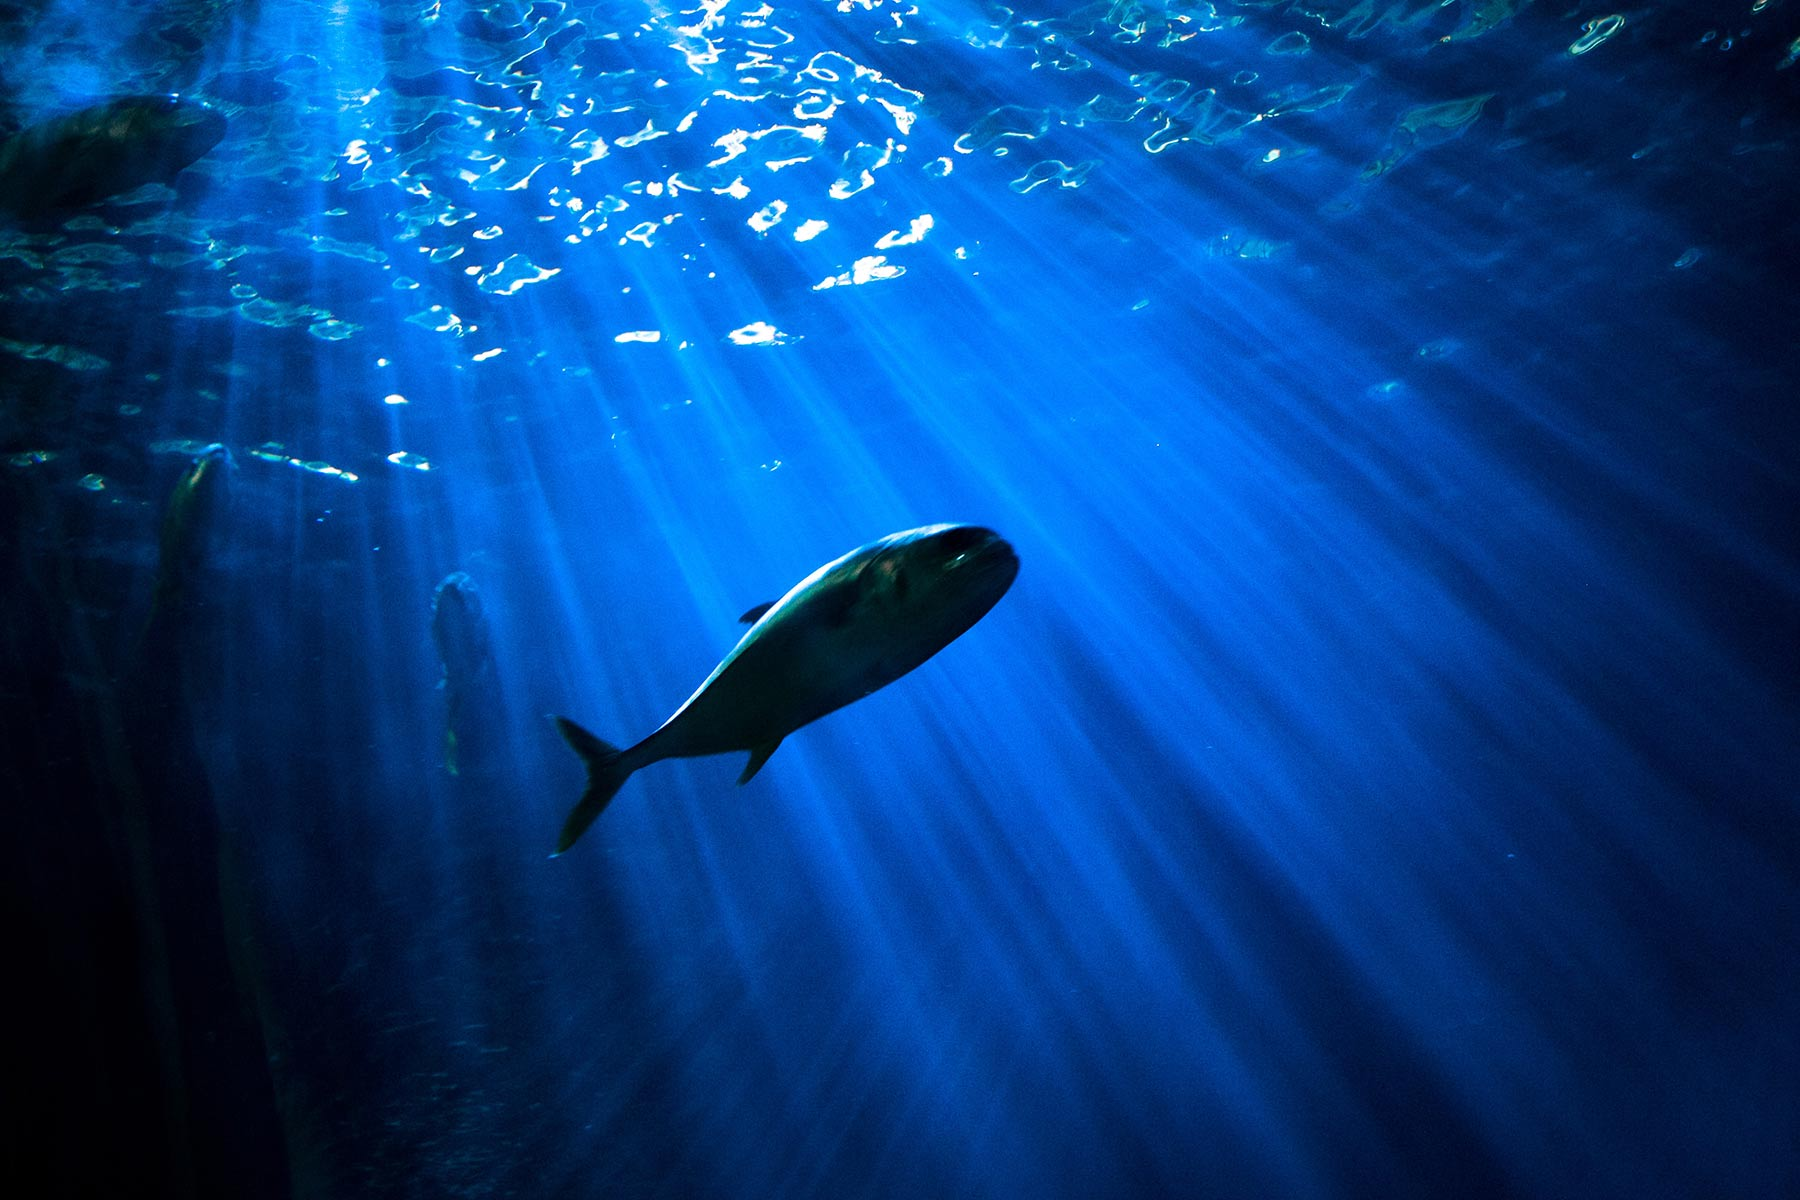 World's first sustainable tuna fishery certified in US